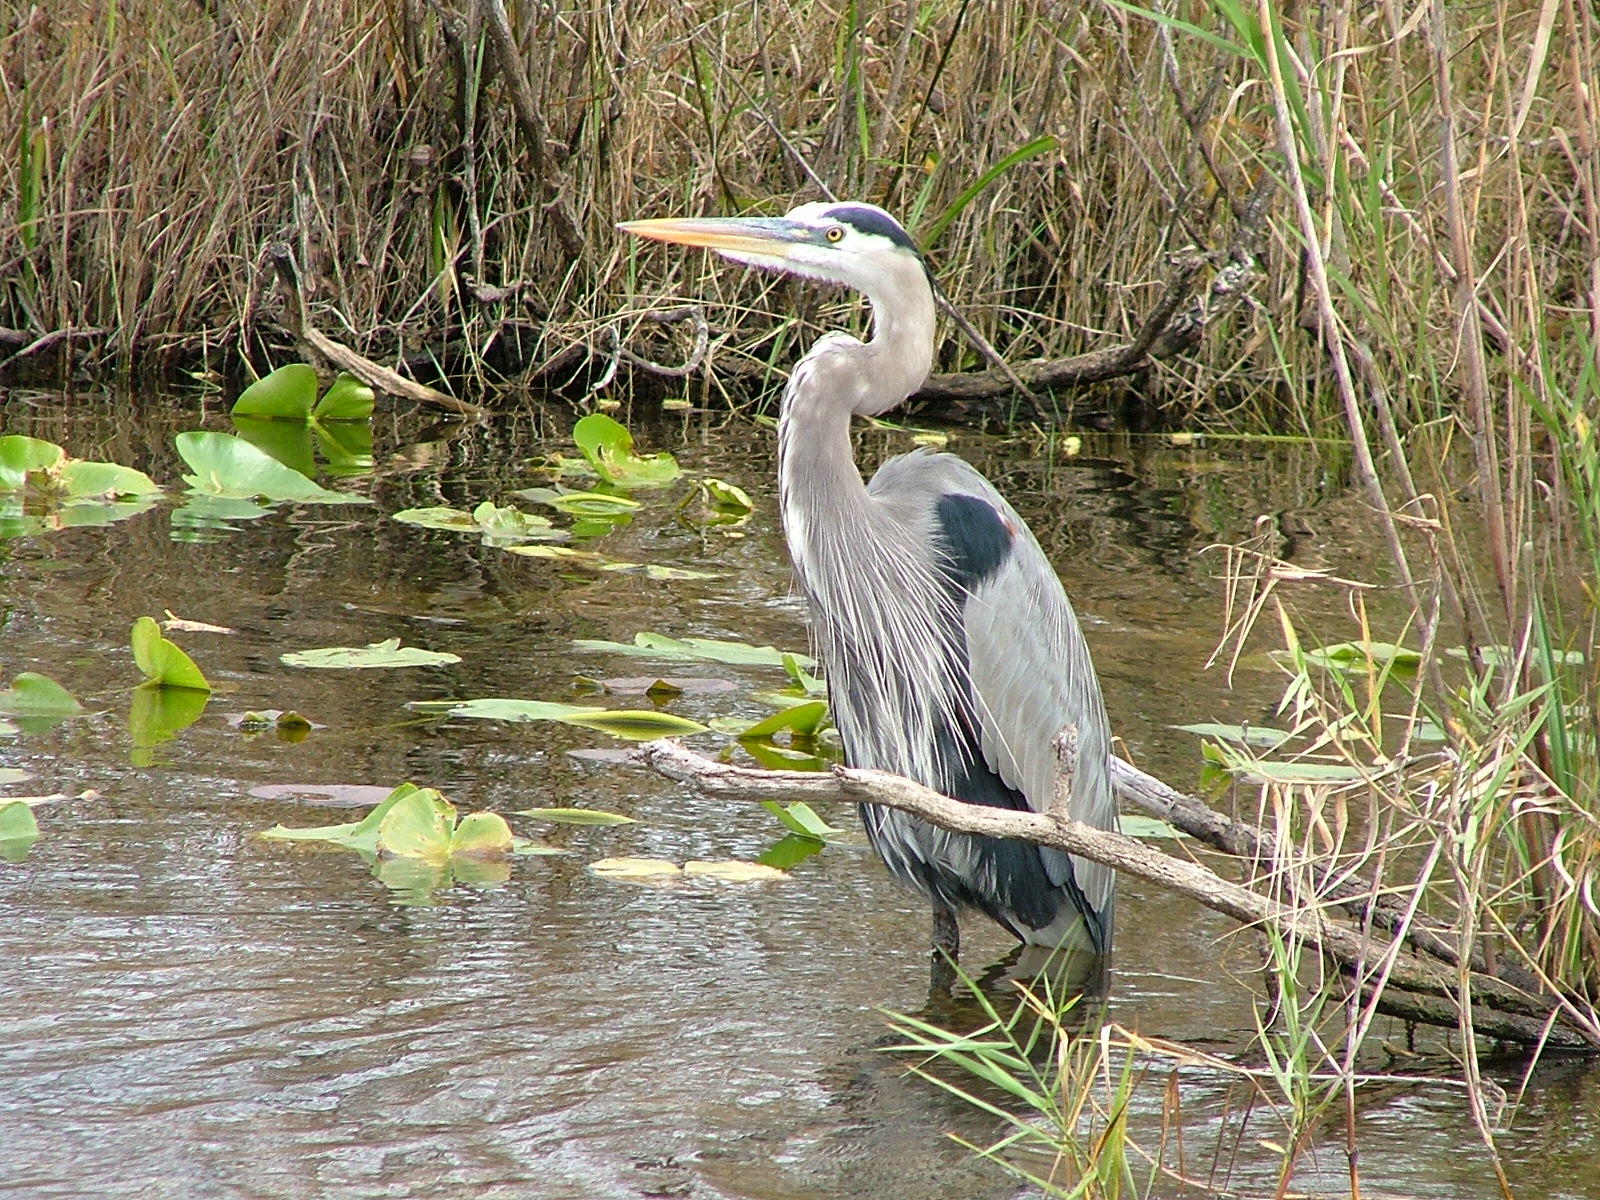 Great blue heron in Everglades National Park